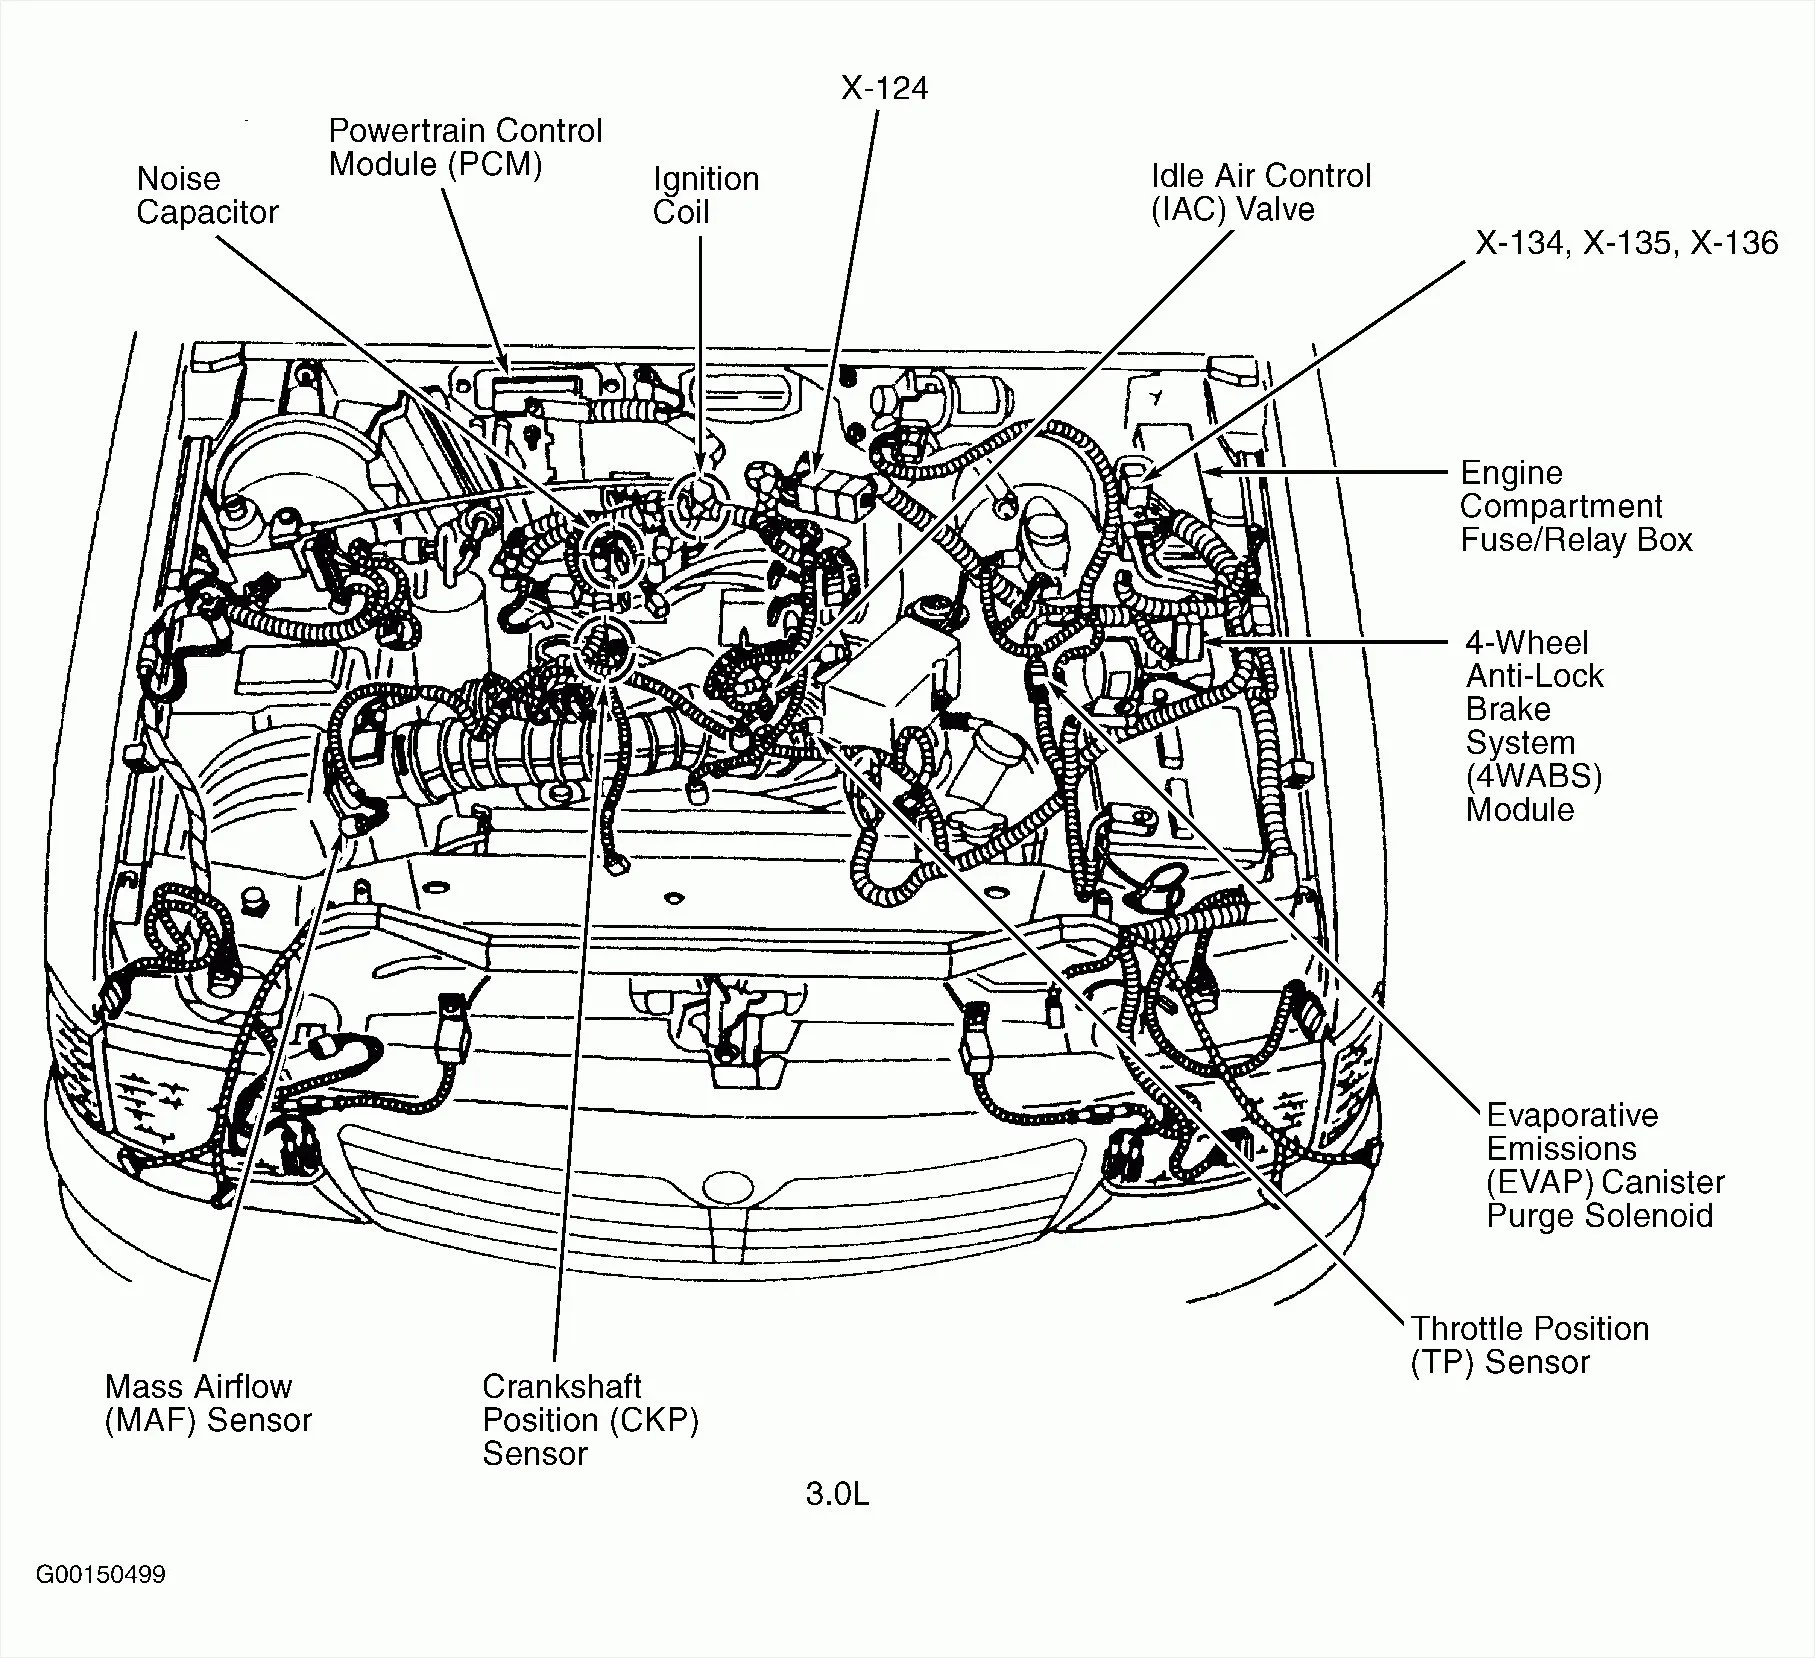 hight resolution of hight resolution of 1999 mazda 626 engine diagram wiring diagrams scematic 2000 mazda 626 engine diagram